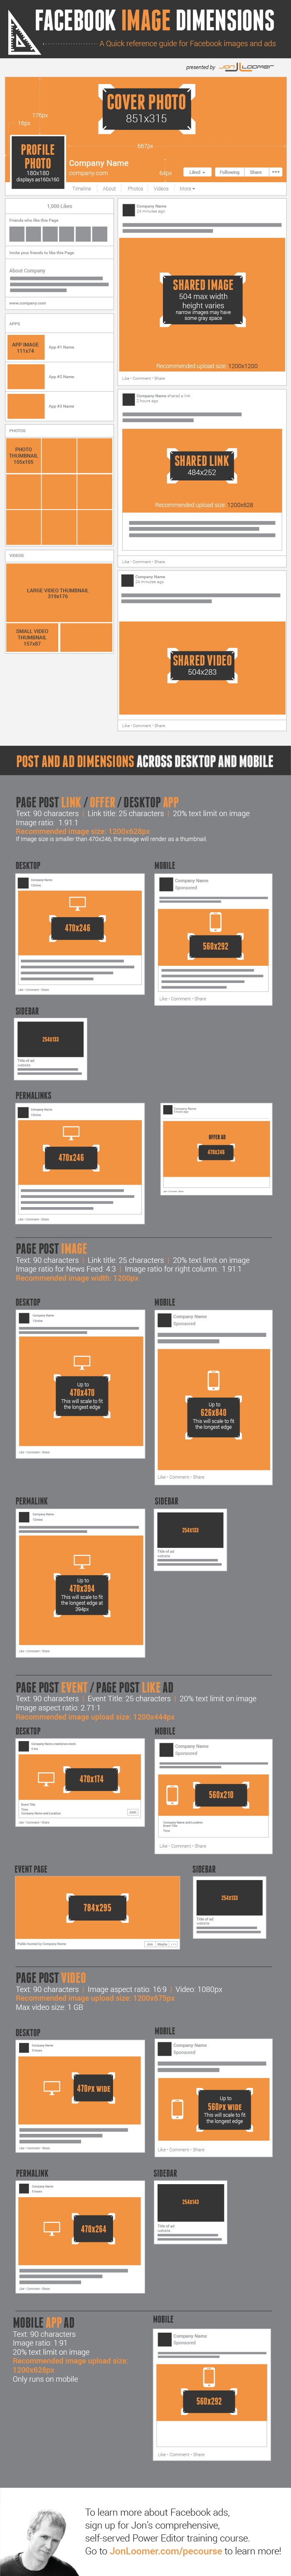 fb dimensions info sep All Facebook Image Dimensions: Timeline, Posts, Ads [Infographic]